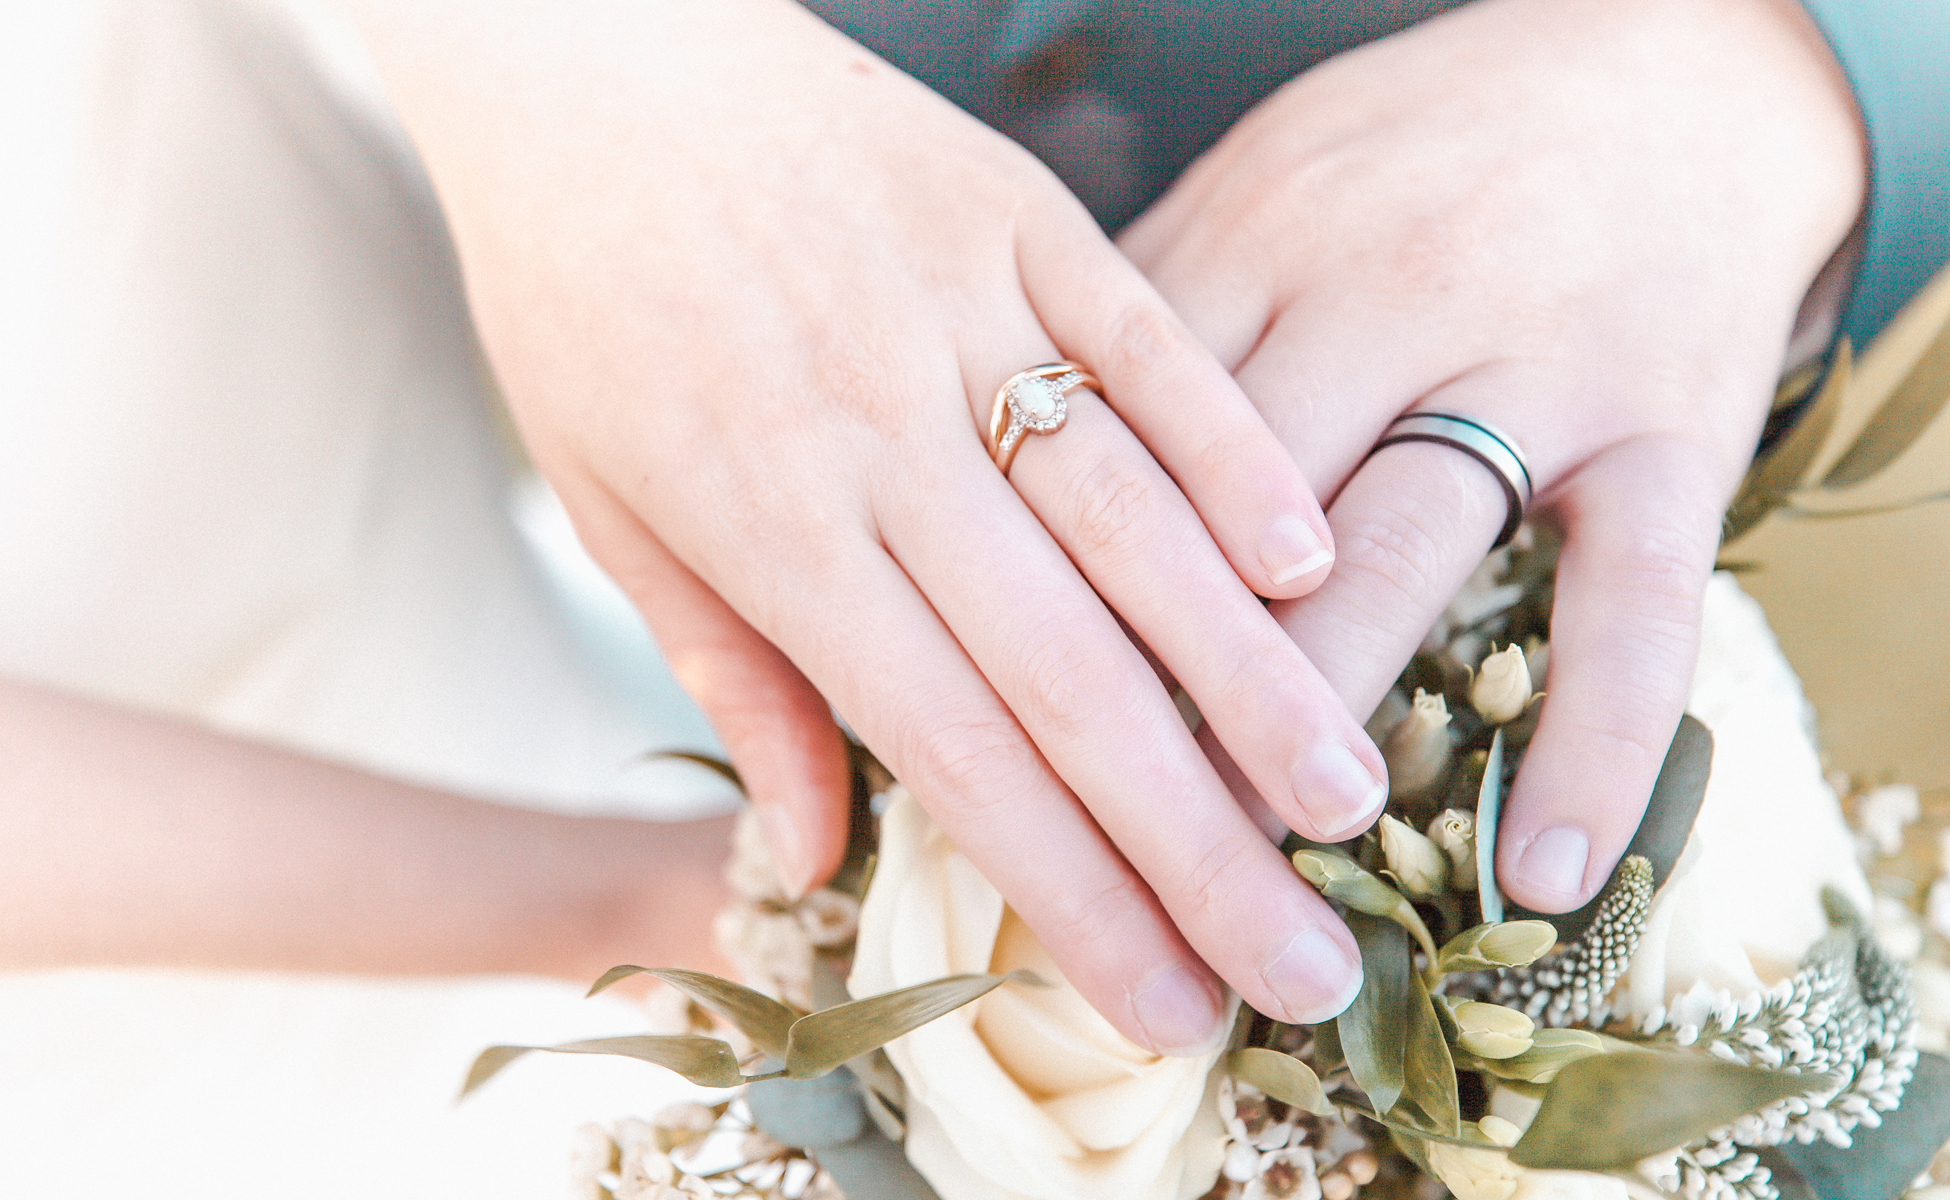 Married couple hold hands and display wedding rings